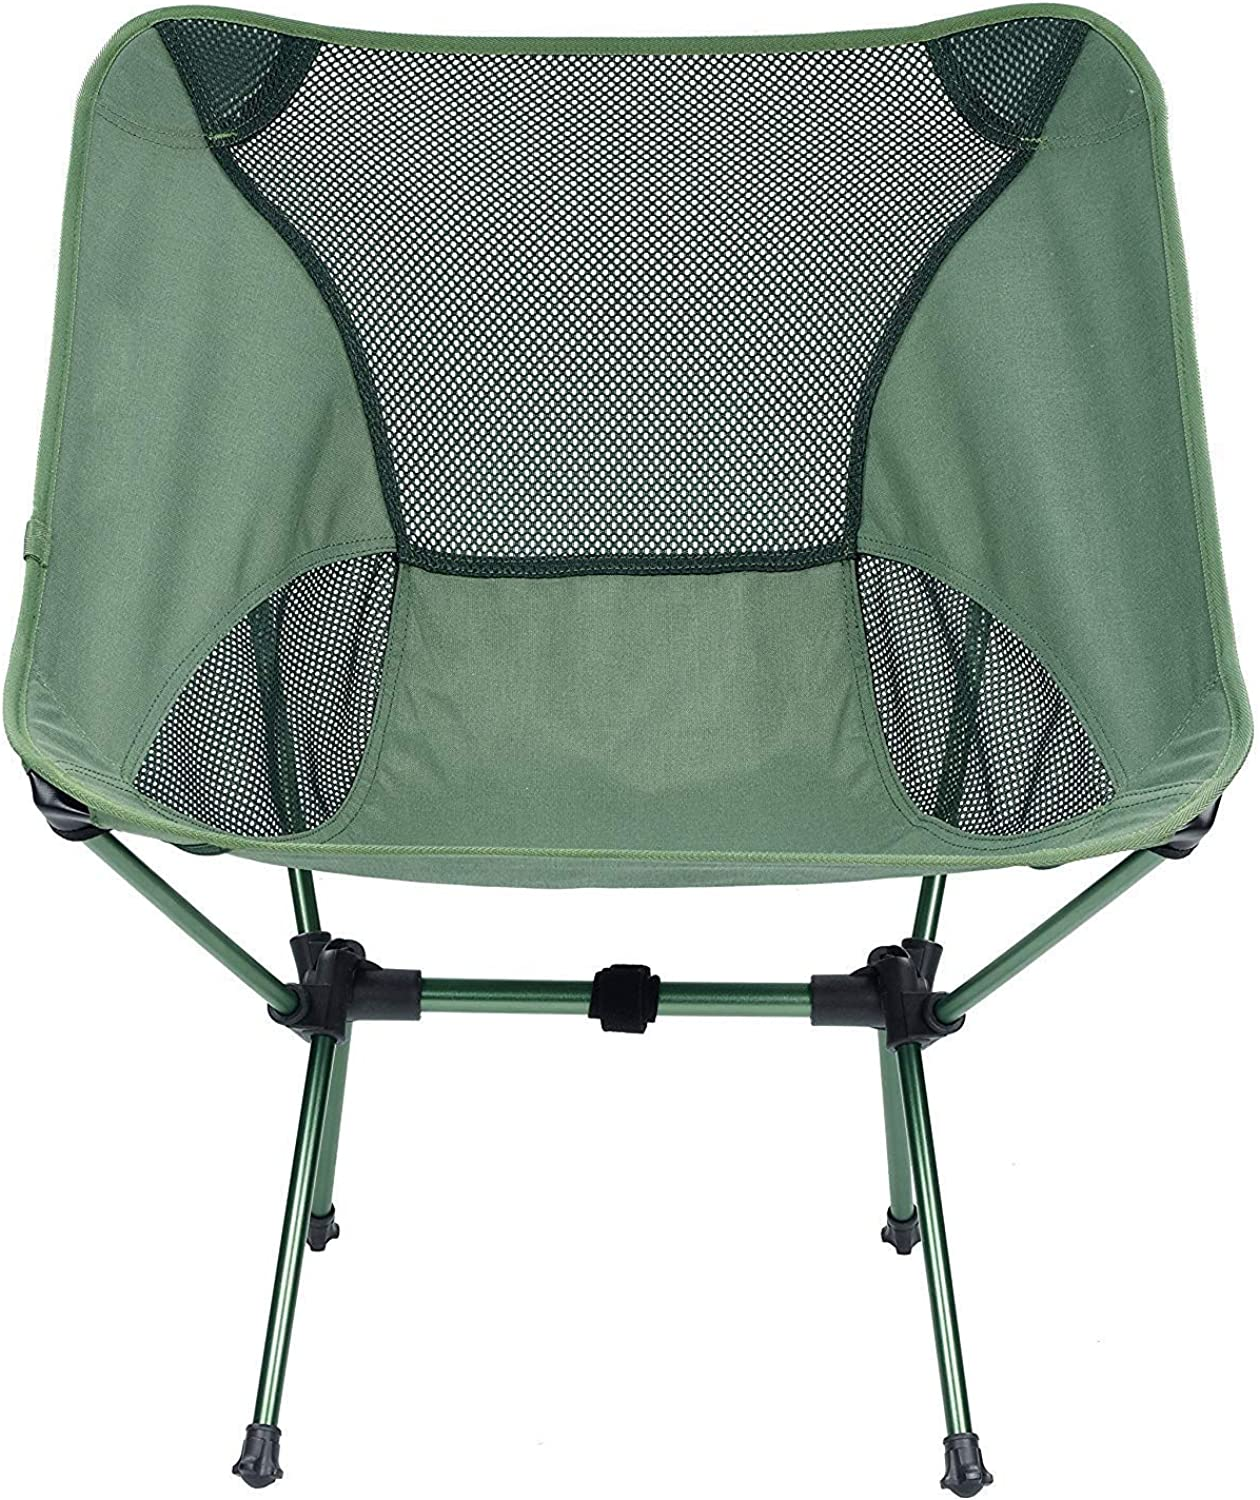 Portable Folding Camping Chair One Beach Chairs Heavy Duty Carry Lightweight Compact Breathable Travel Hiking Picnic Outdoor 330Lbs Capacity BBQ Camp